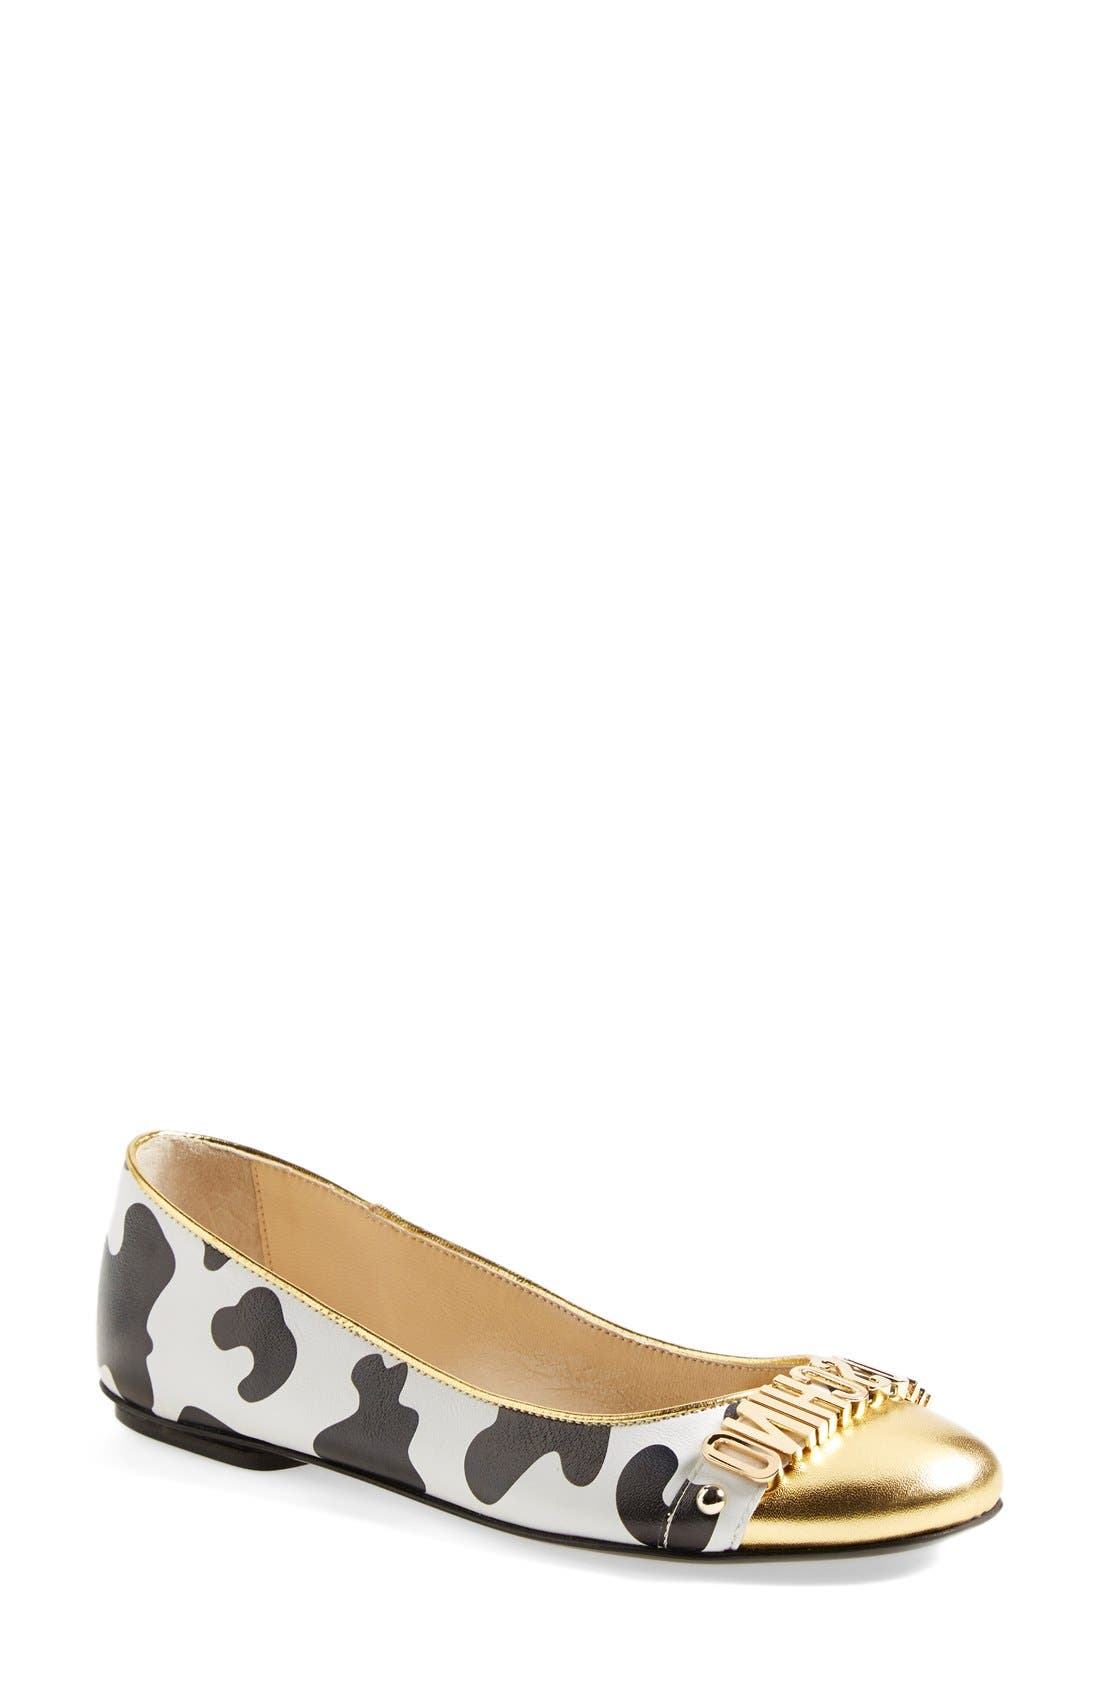 Alternate Image 1 Selected - Moschino Logo Ballet Flat (Women)